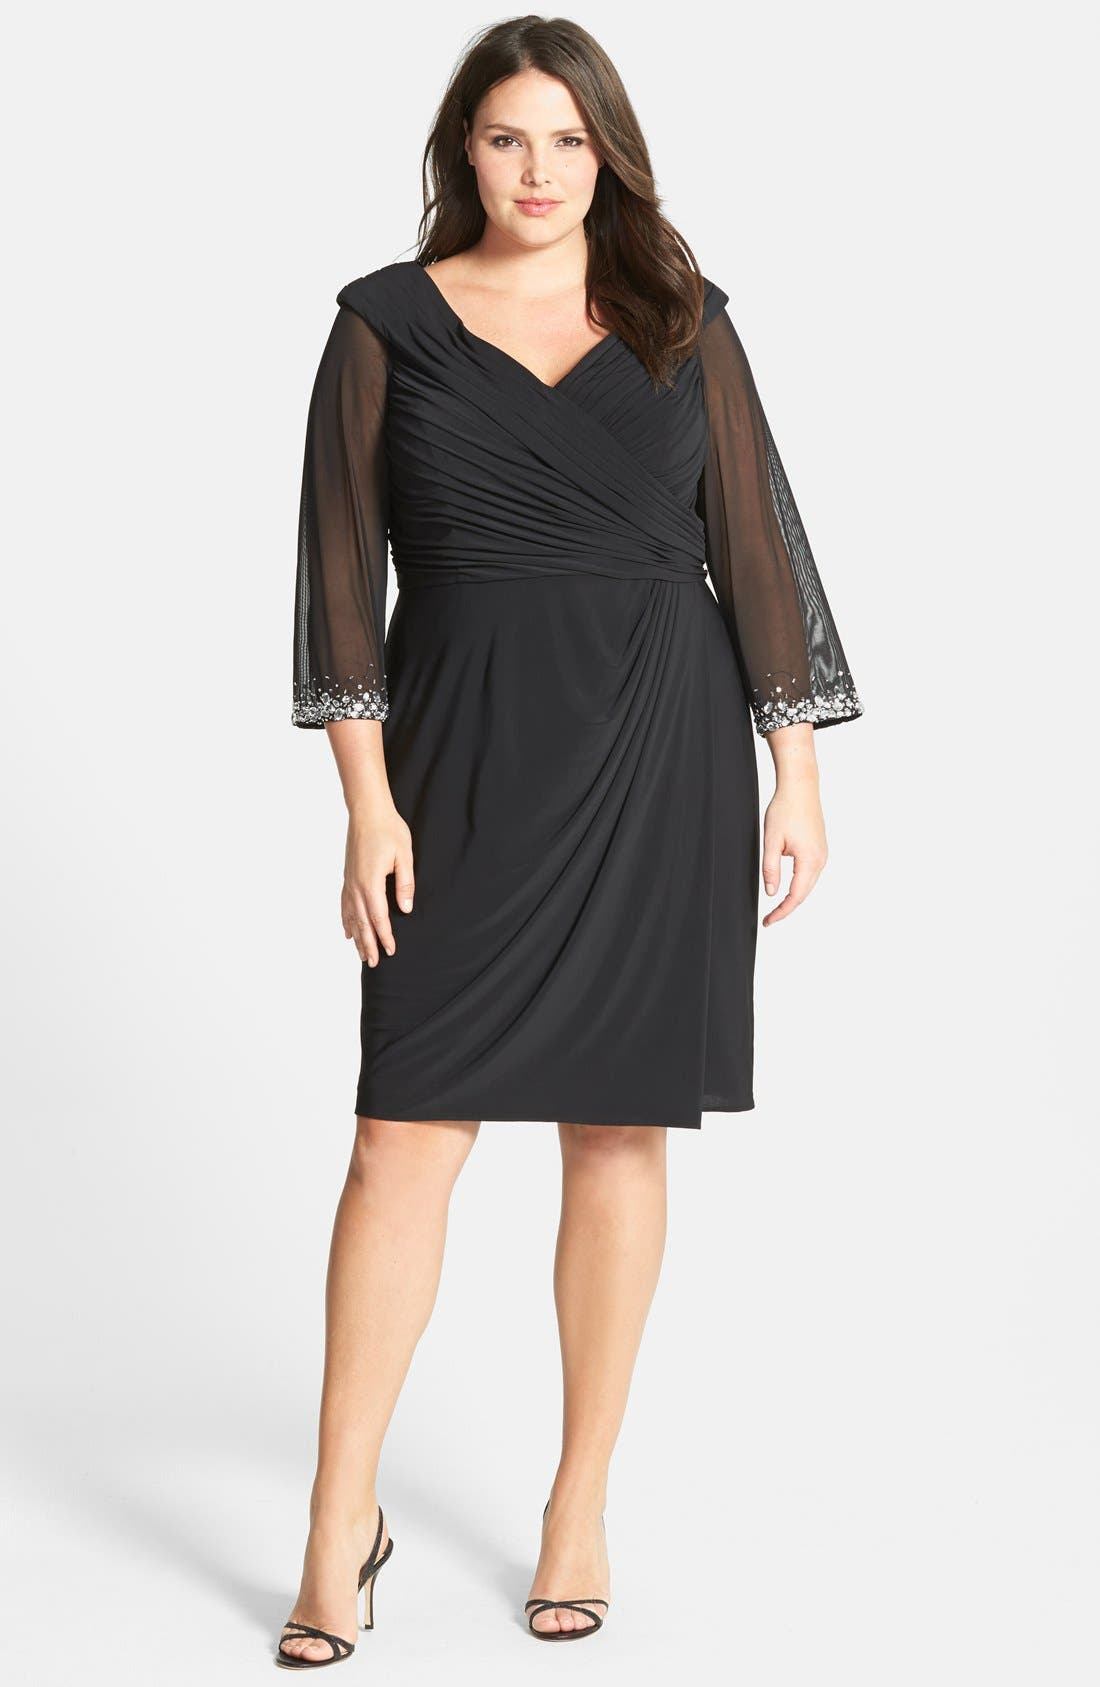 Main Image - Alex Evenings Embellished Portrait Collar Cocktail Dress (Plus Size)